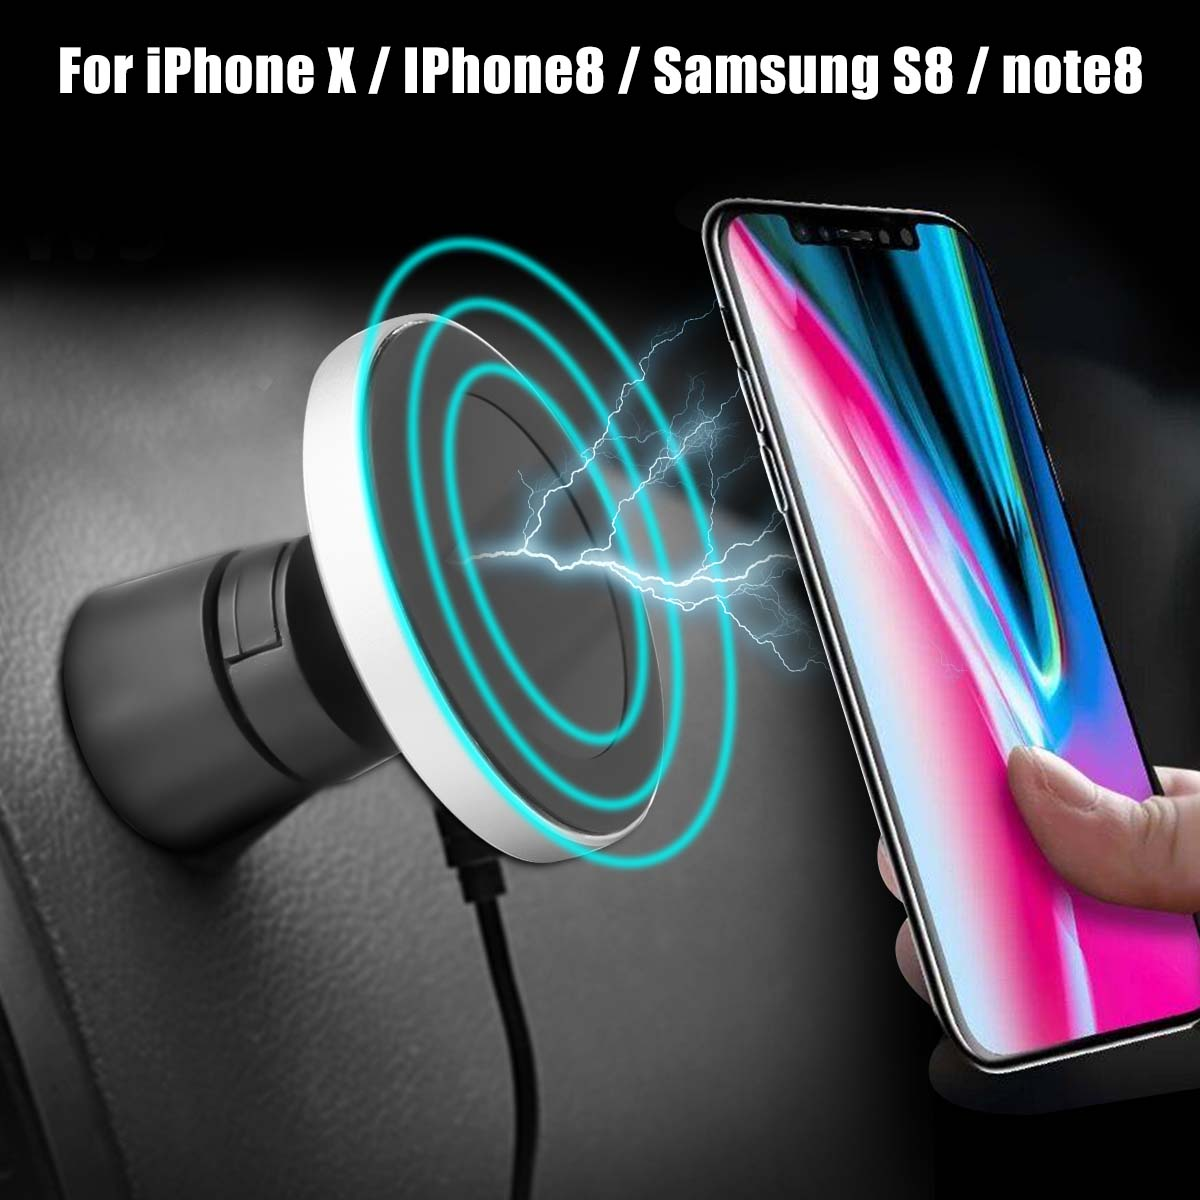 5V Wireless Car Fast Wireles Charger Magnetic Car Holder For iPhone X / IPhone8 / Samsung S8 / note8